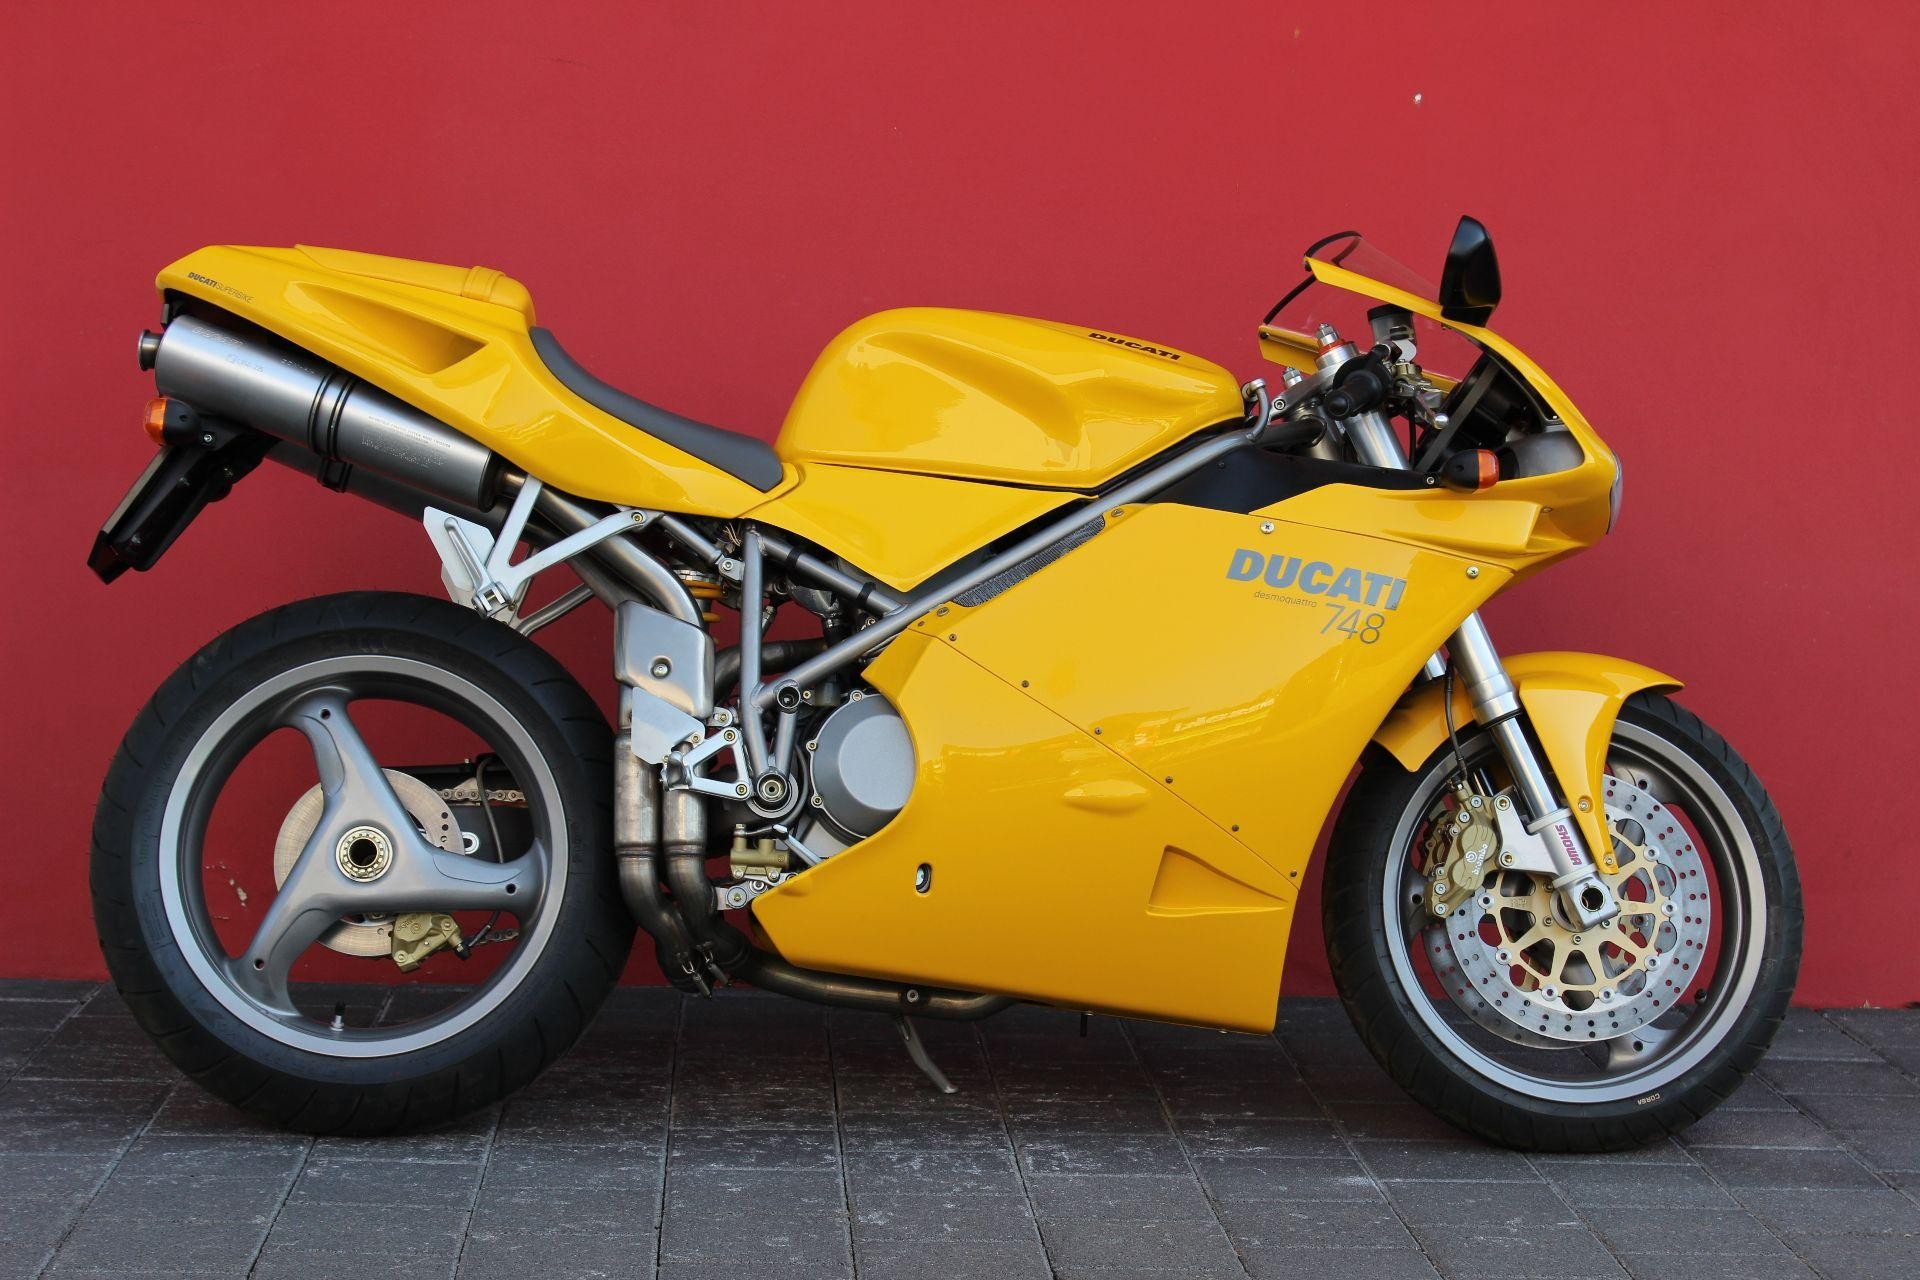 DUCATI 748 Biposto New vehicle/bike